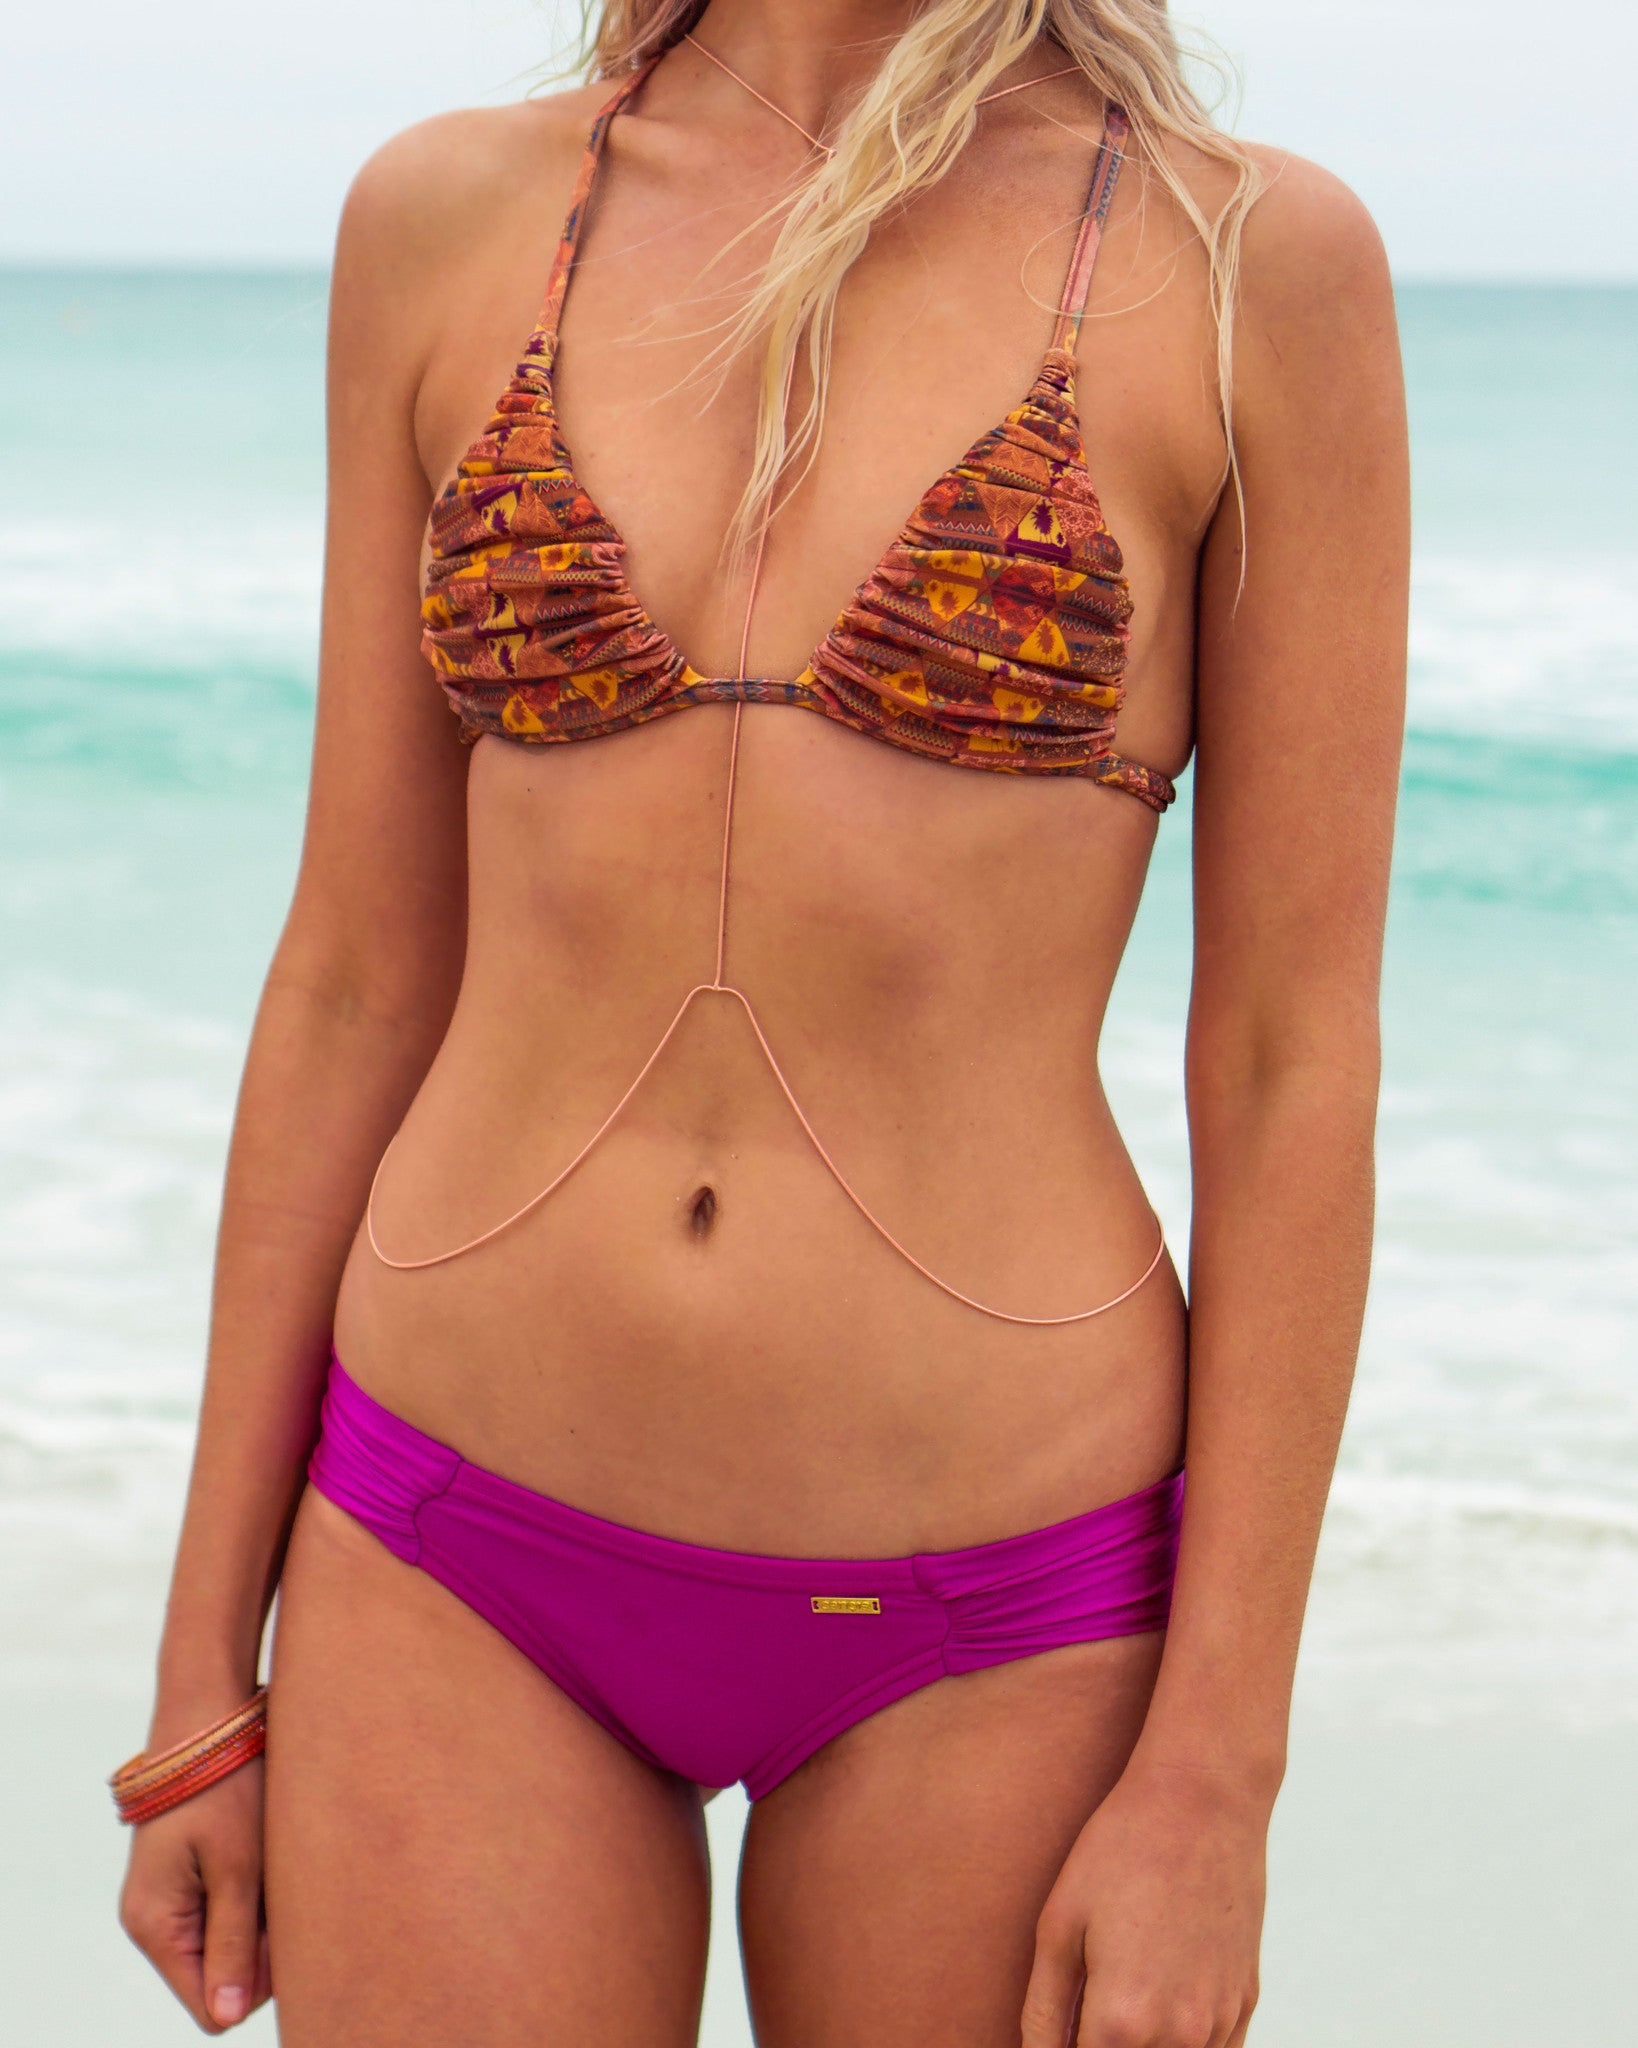 Rio Claro btms - Magenta - cheeky cut brazilian surf bikinis Cenote Swimwear that stays on in the surf